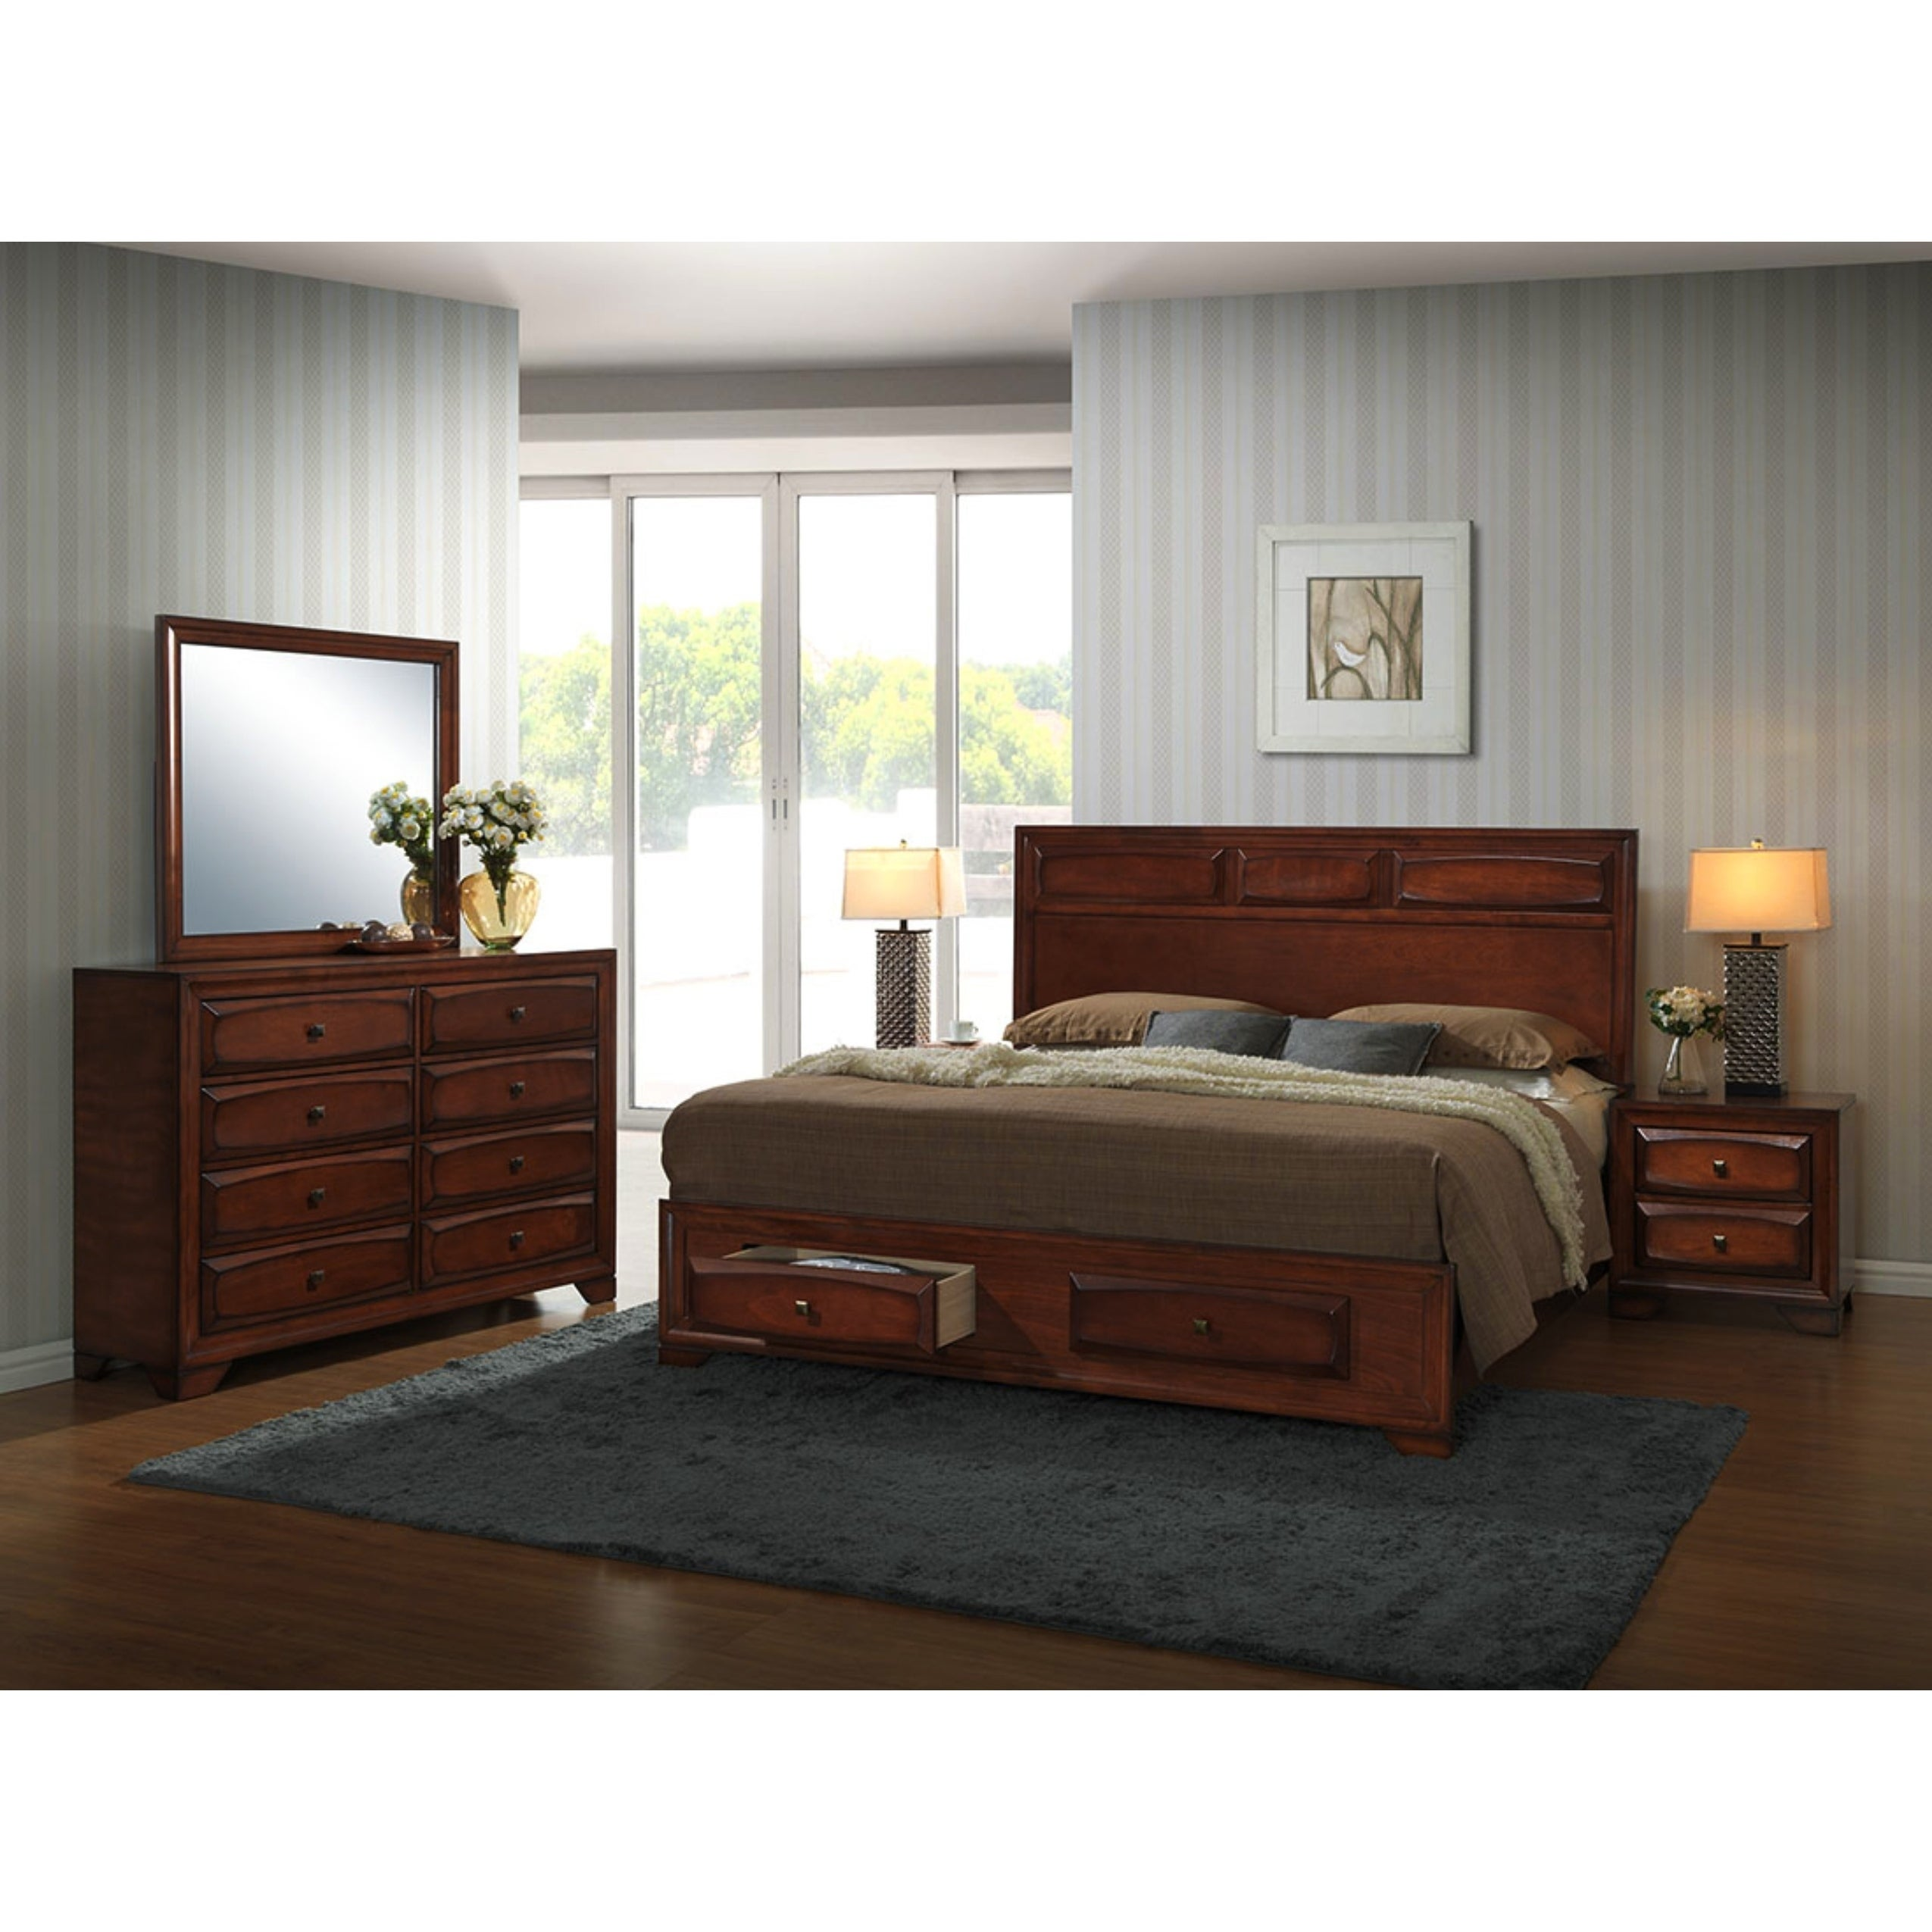 Oakland 139 Antique Oak Wood Queen Size 5 Piece Bedroom Set